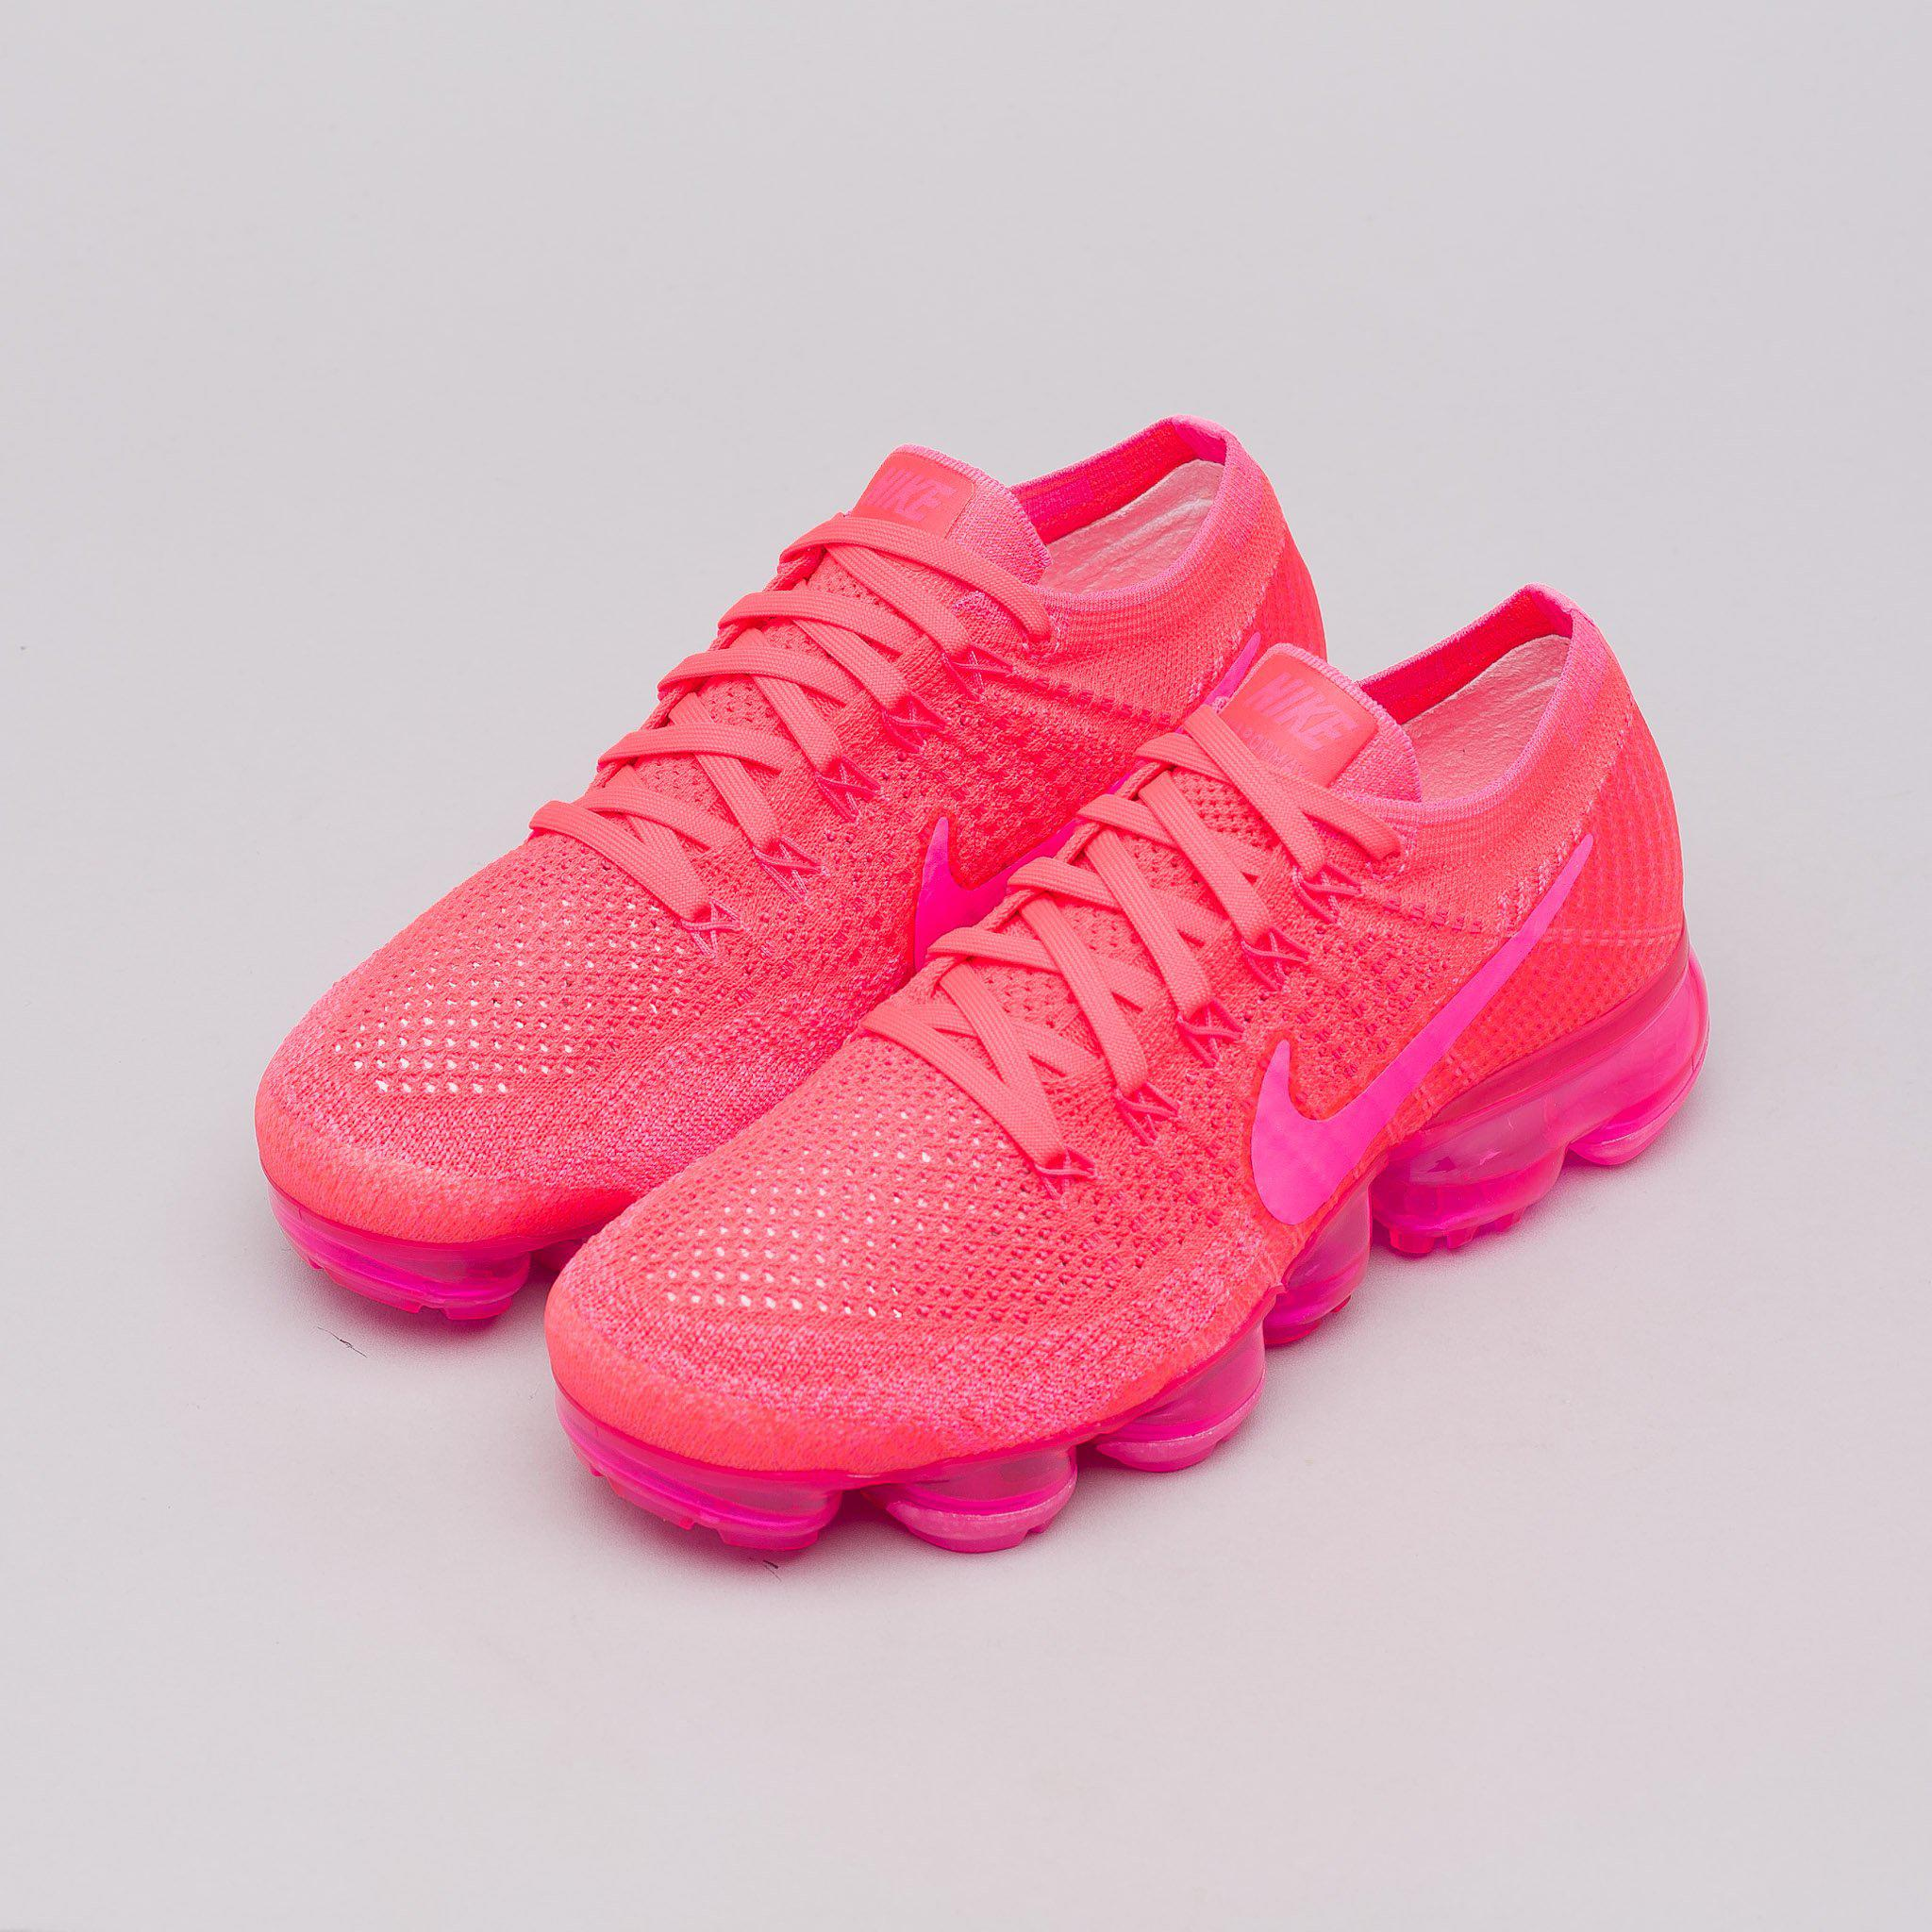 5a0381423c2 ... shoes white black hyper punch bright magenta a09cb ad571  uk gallery.  mens nike flyknit c27cb 5a0a7